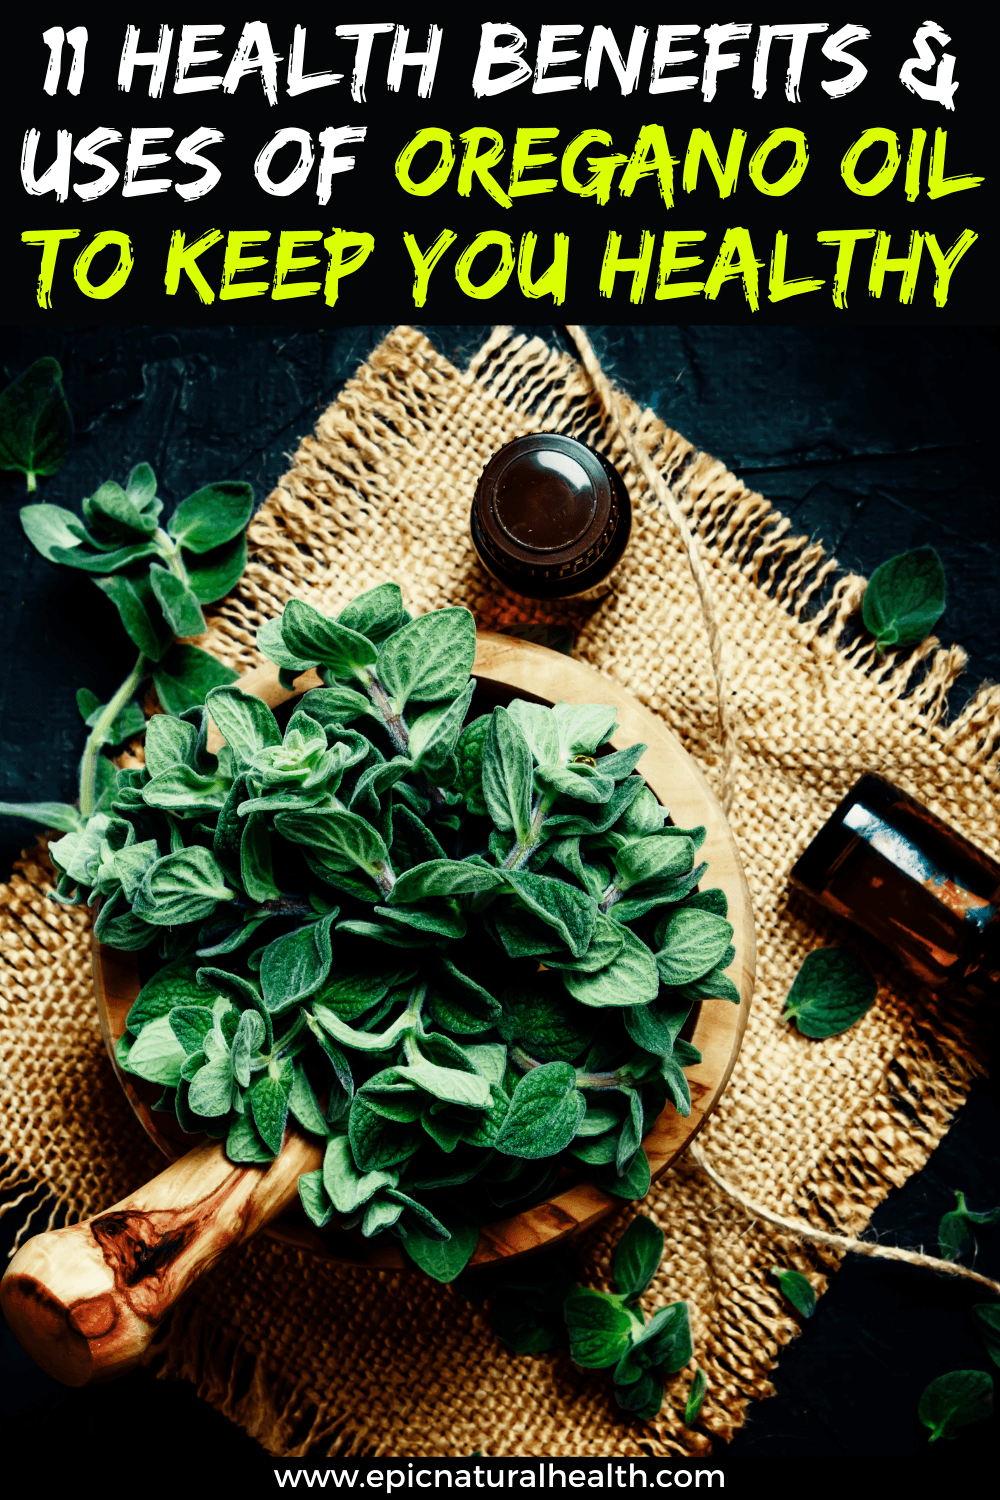 11 Health Benefits and uses of oregano oil to keep you healthy